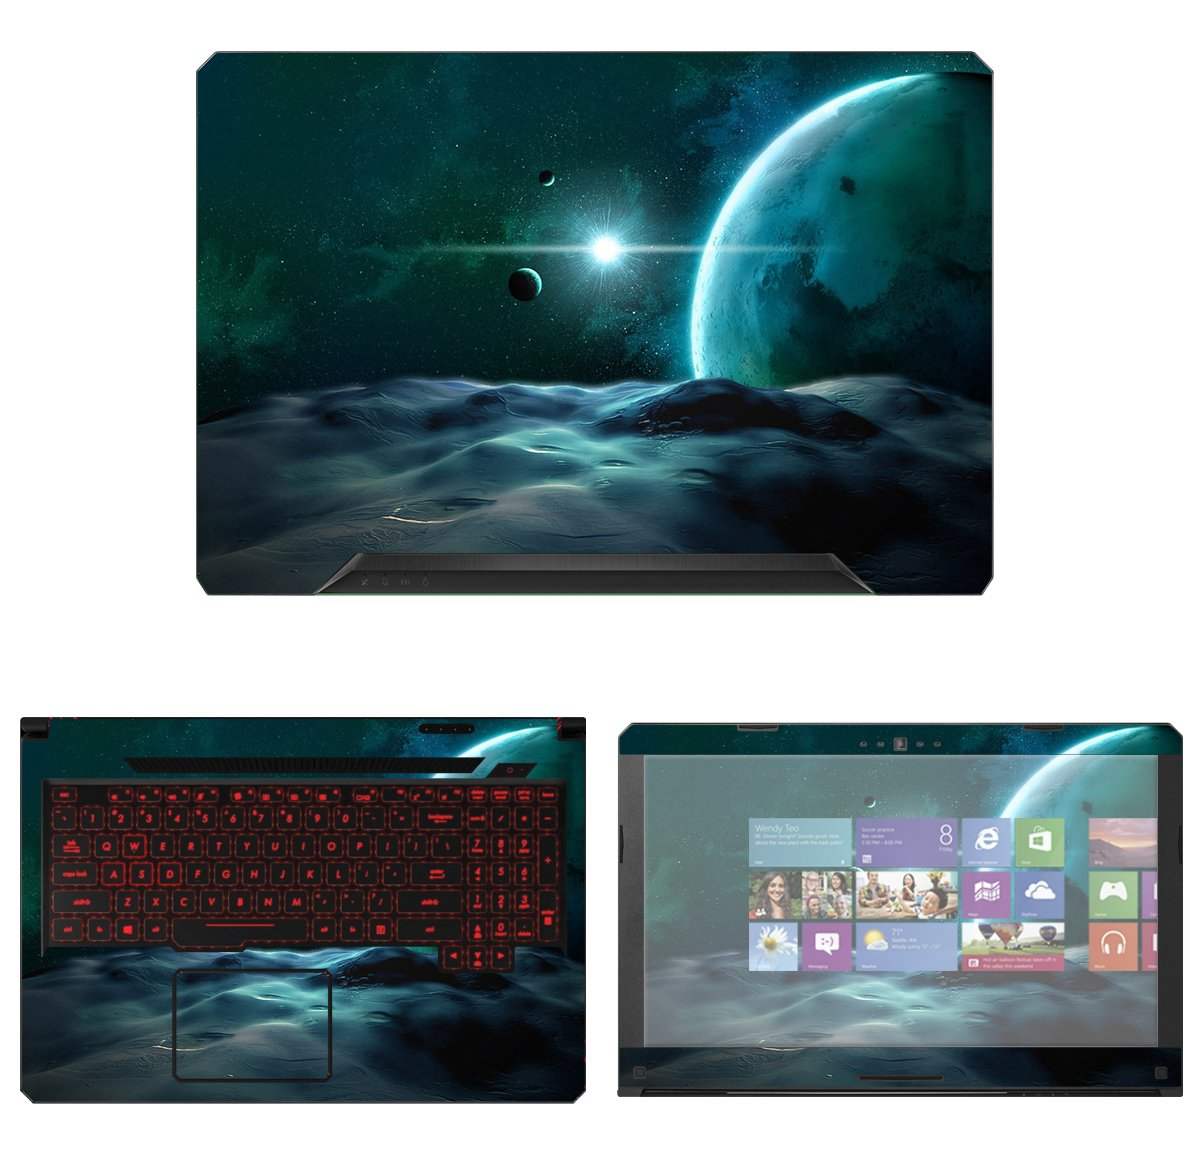 decalrus Protective Decal Space Skin Sticker for Asus TUF Gaming Laptop FX504 (15.6'' Screen) case cover wrap AStuf15_Fx504-152